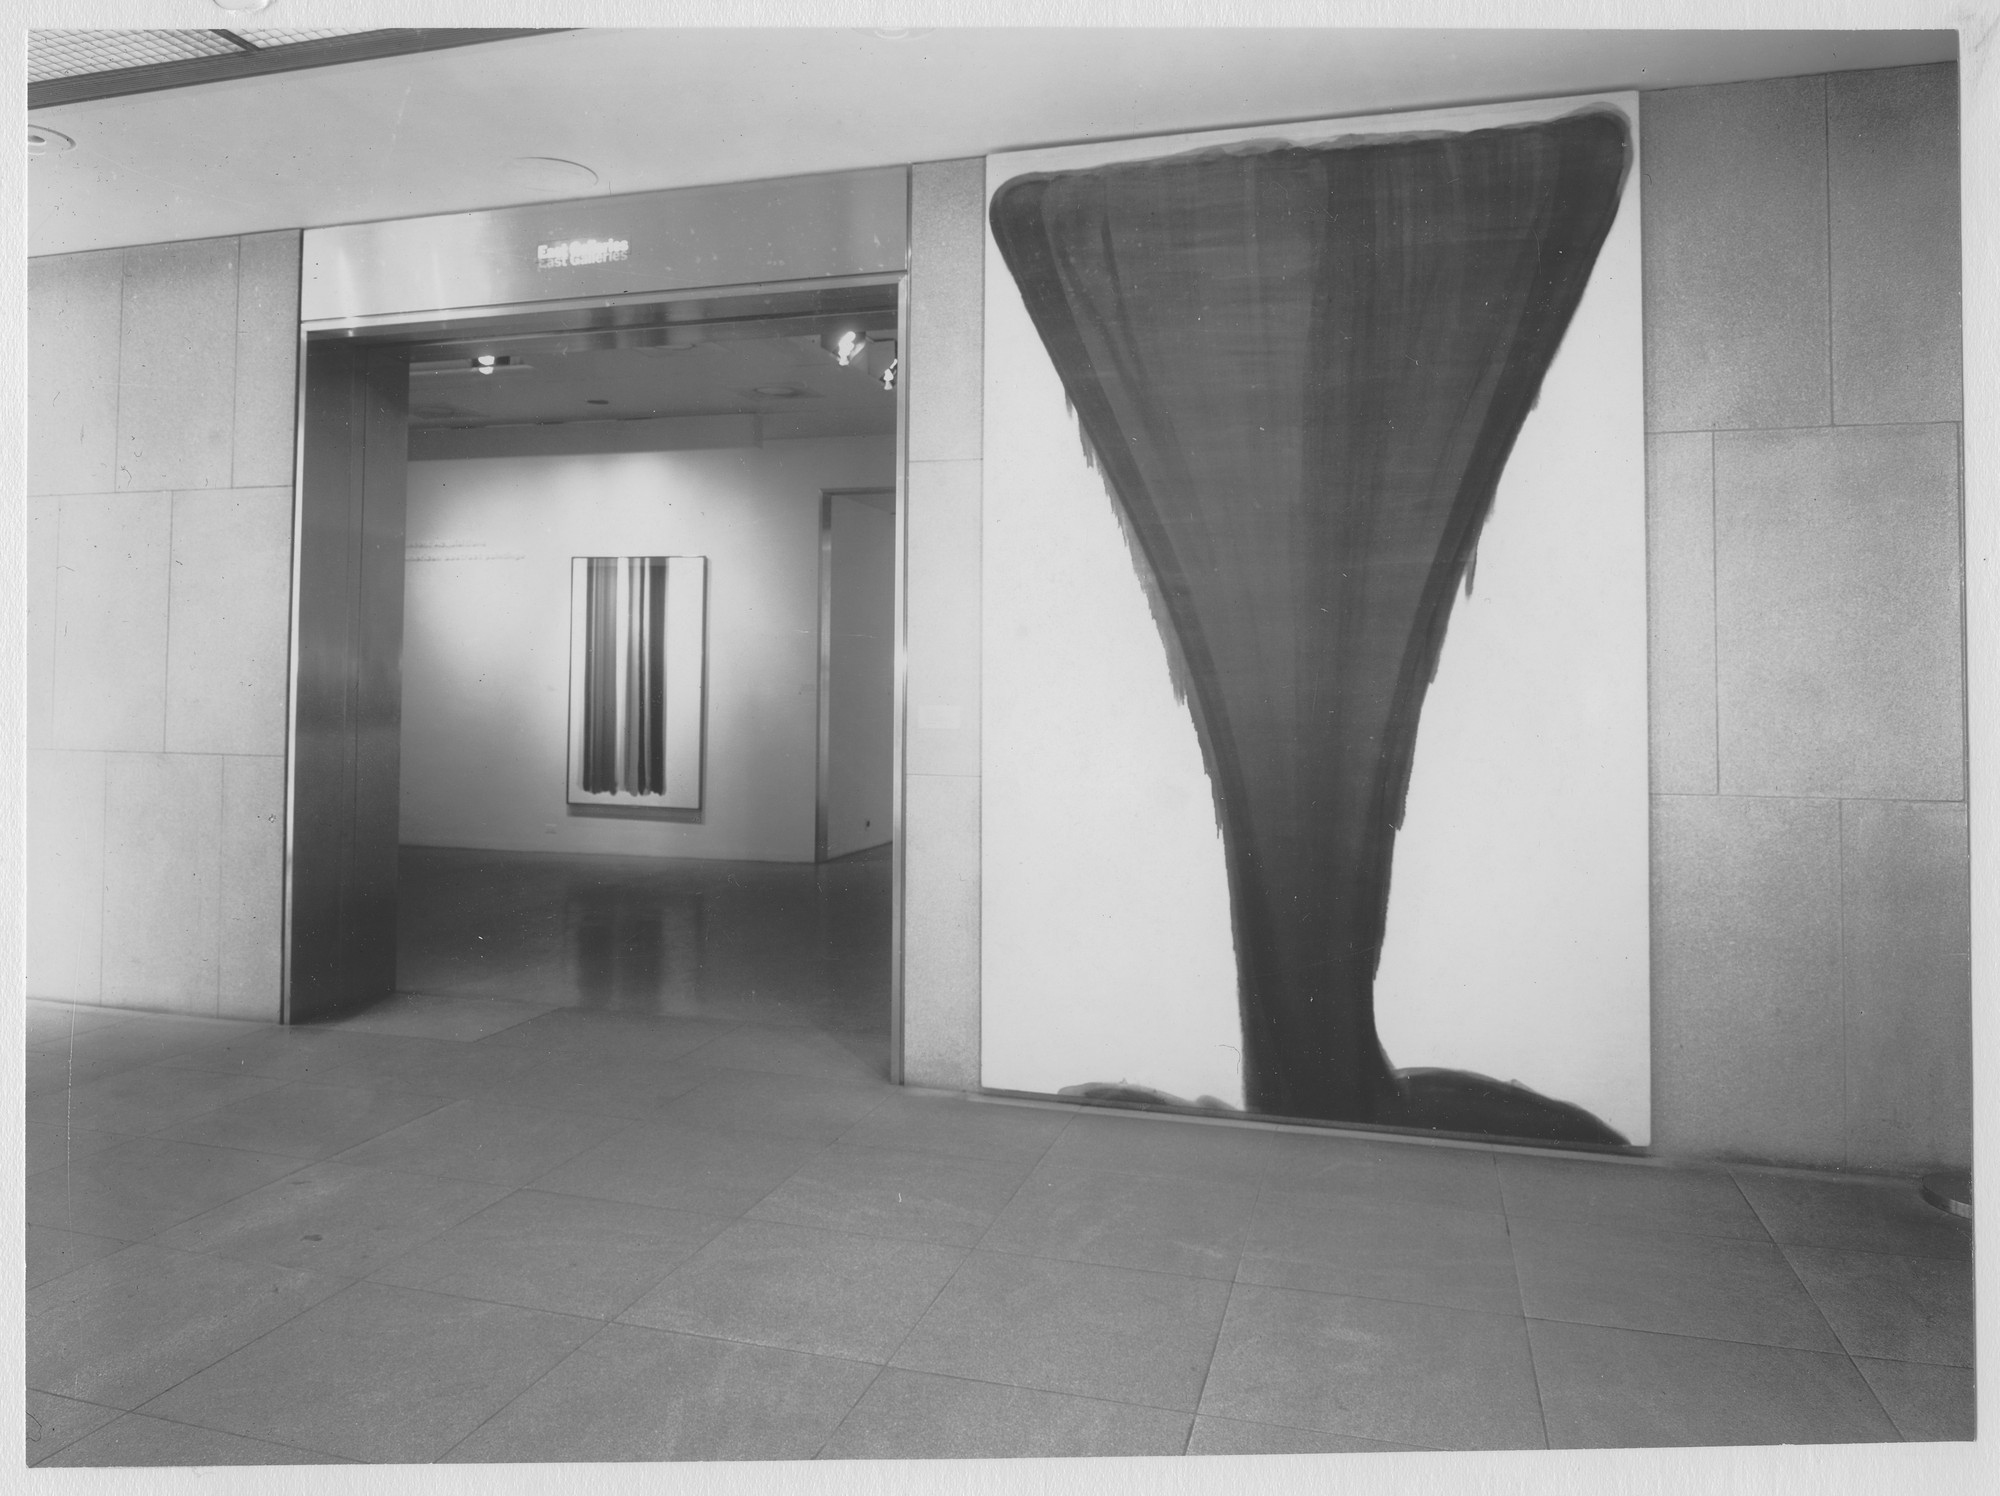 "Installation view of the exhibition, ""Recent Acquisitions:  Painting and Sculpture."" February 16, 1965–April 25, 1965. Photographic Archive. The Museum of Modern Art Archives, New York. IN756.1. Photograph by Soichi Sunami."